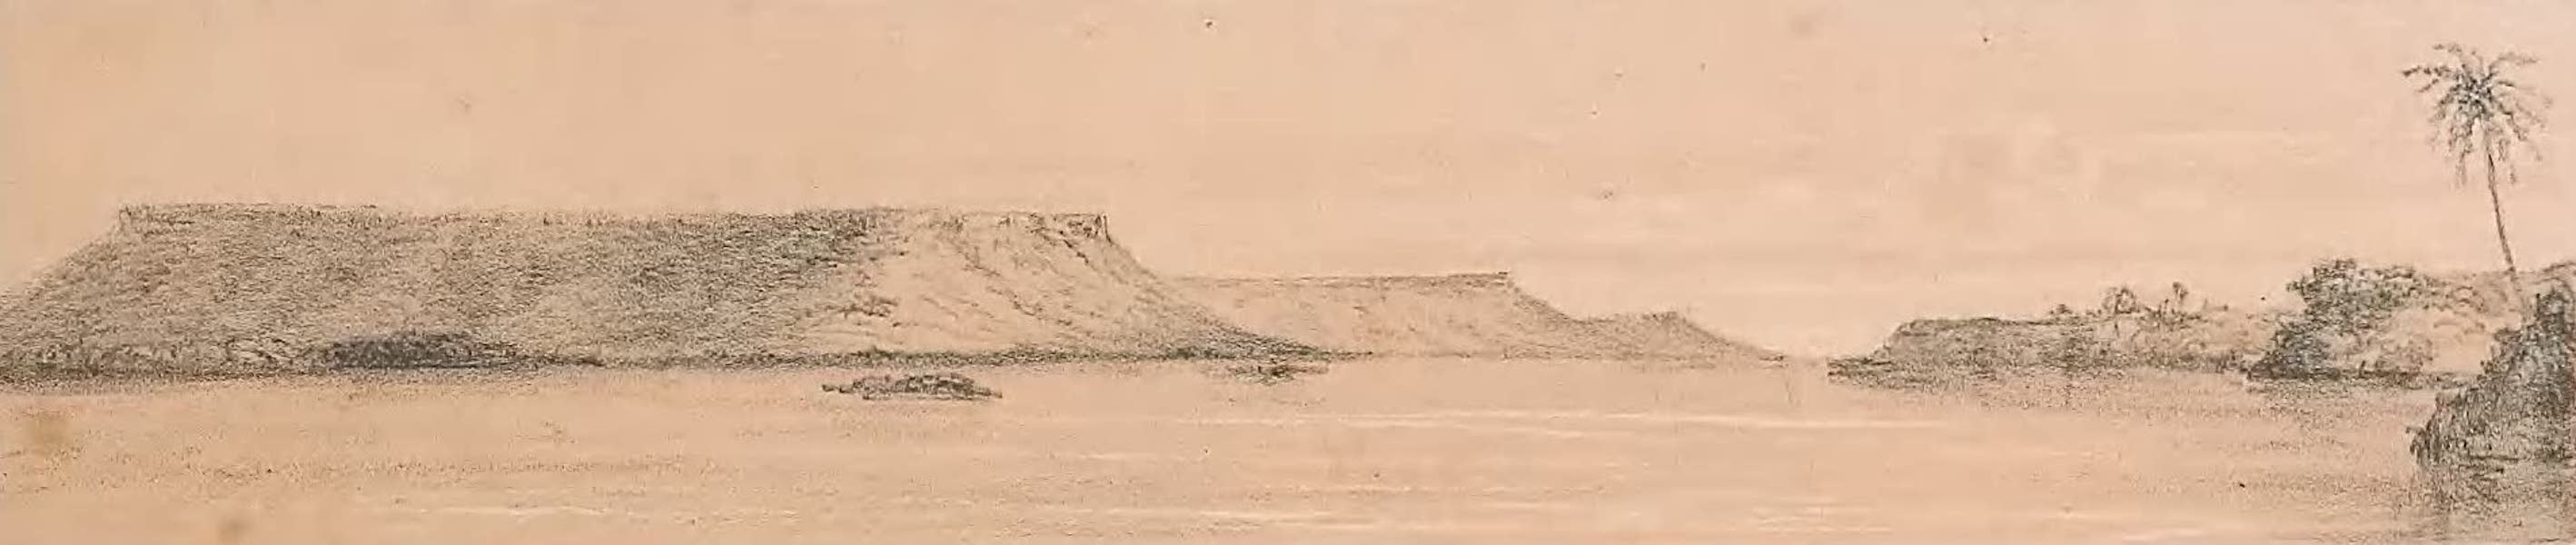 Picturesque Views on the River Niger - Six Miles Below the Confluence Looking Up the River (1840)